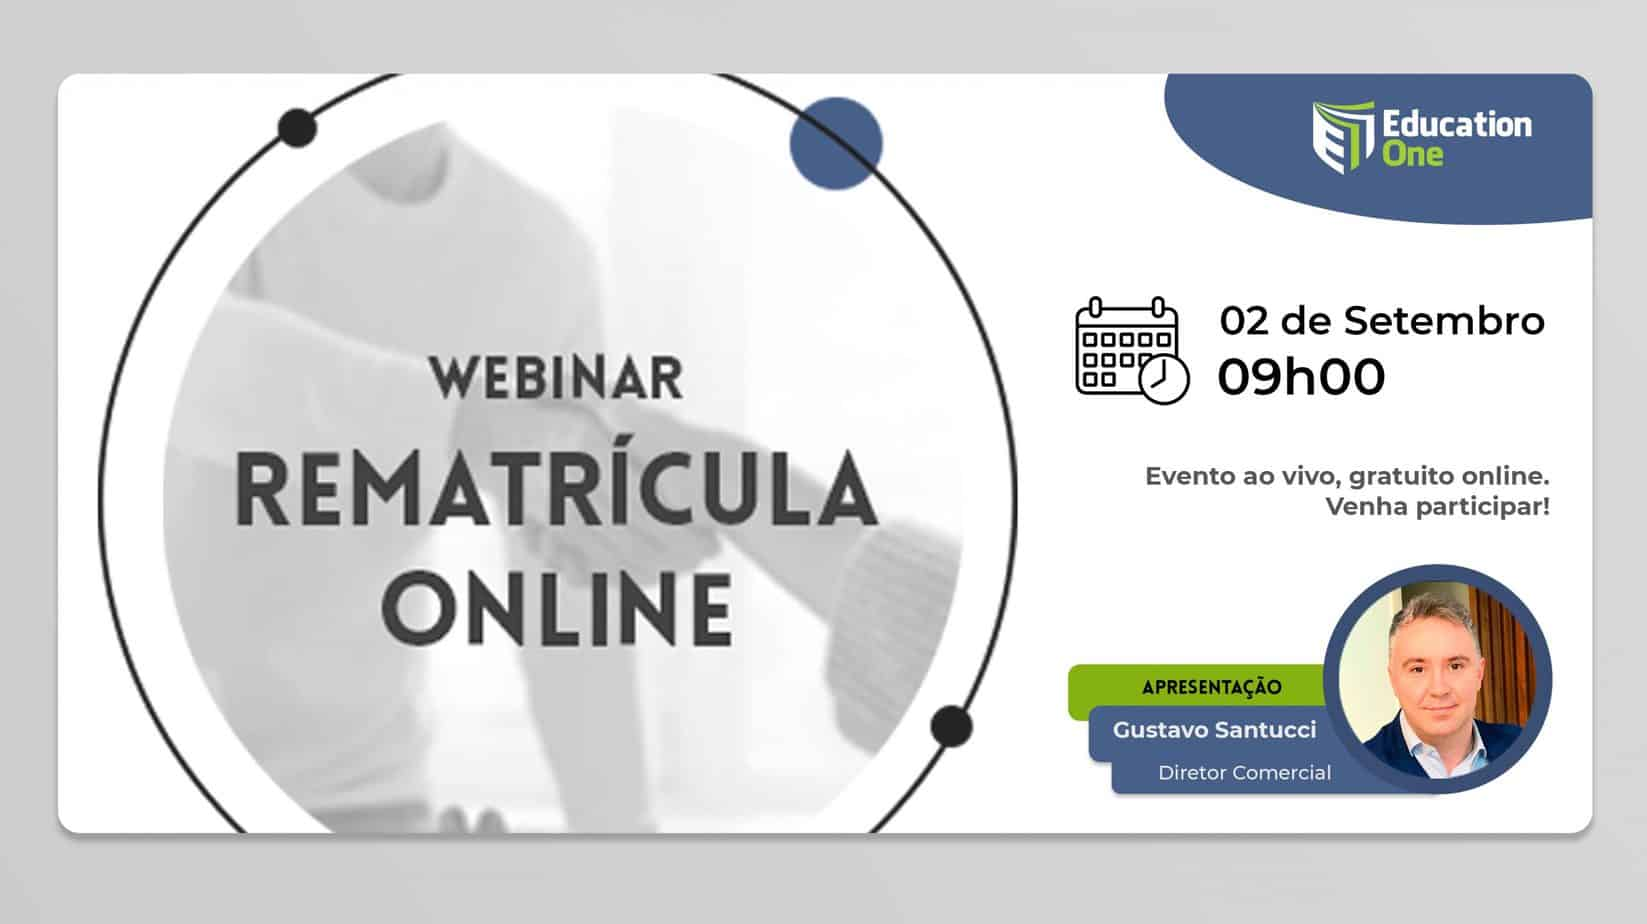 Webinar sobre rematrícula Online (Comercial) através do Education One